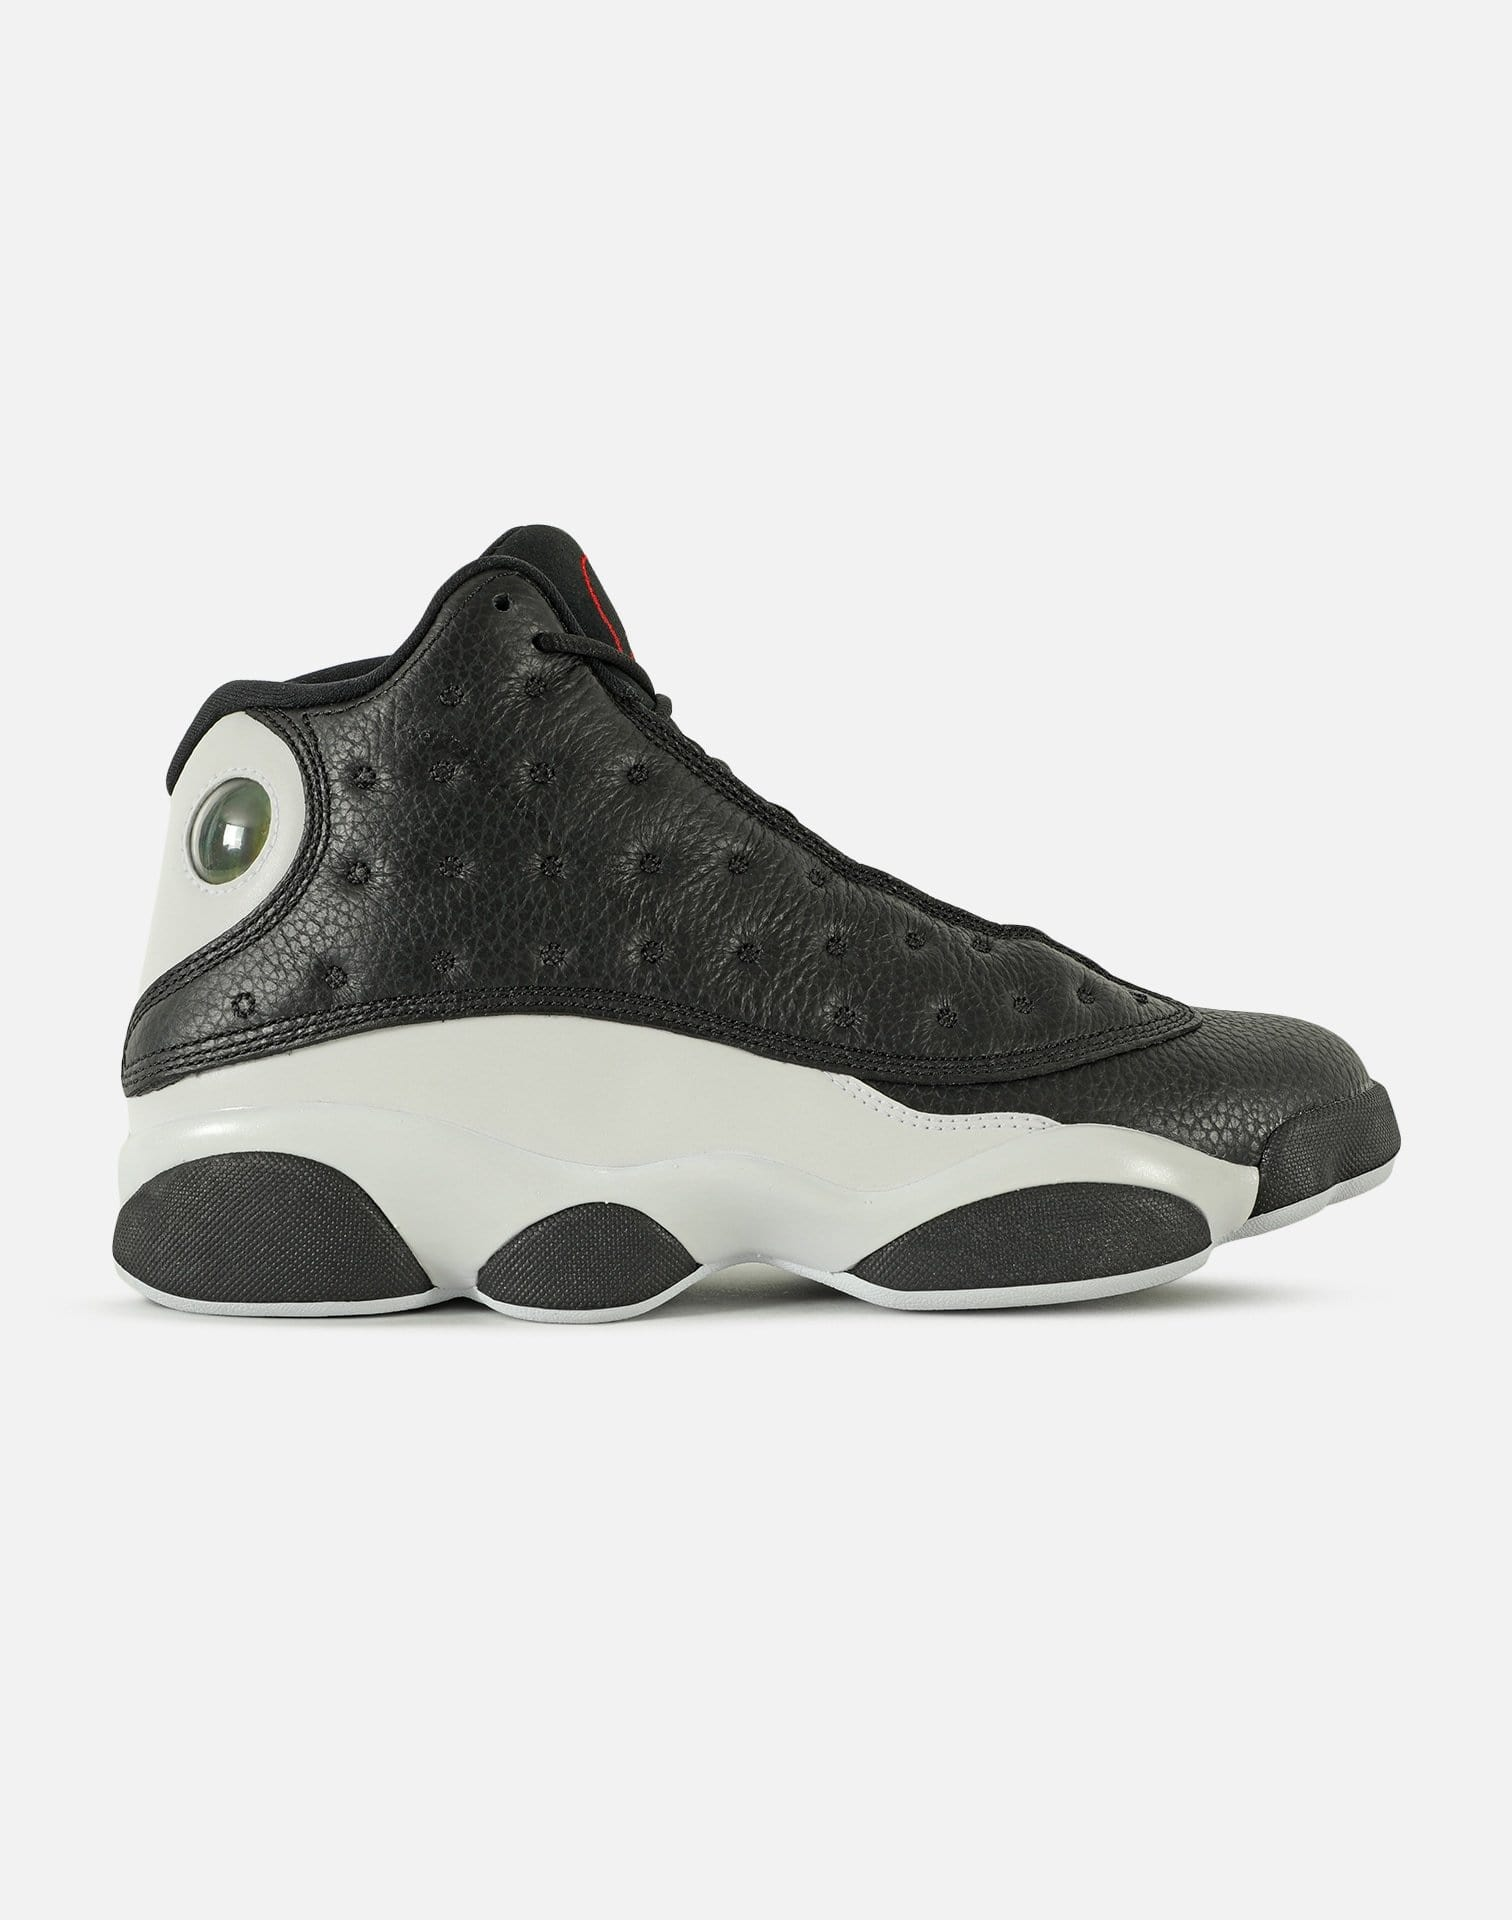 AIR JORDAN RETRO 13 'REVERSE HE GOT GAME'